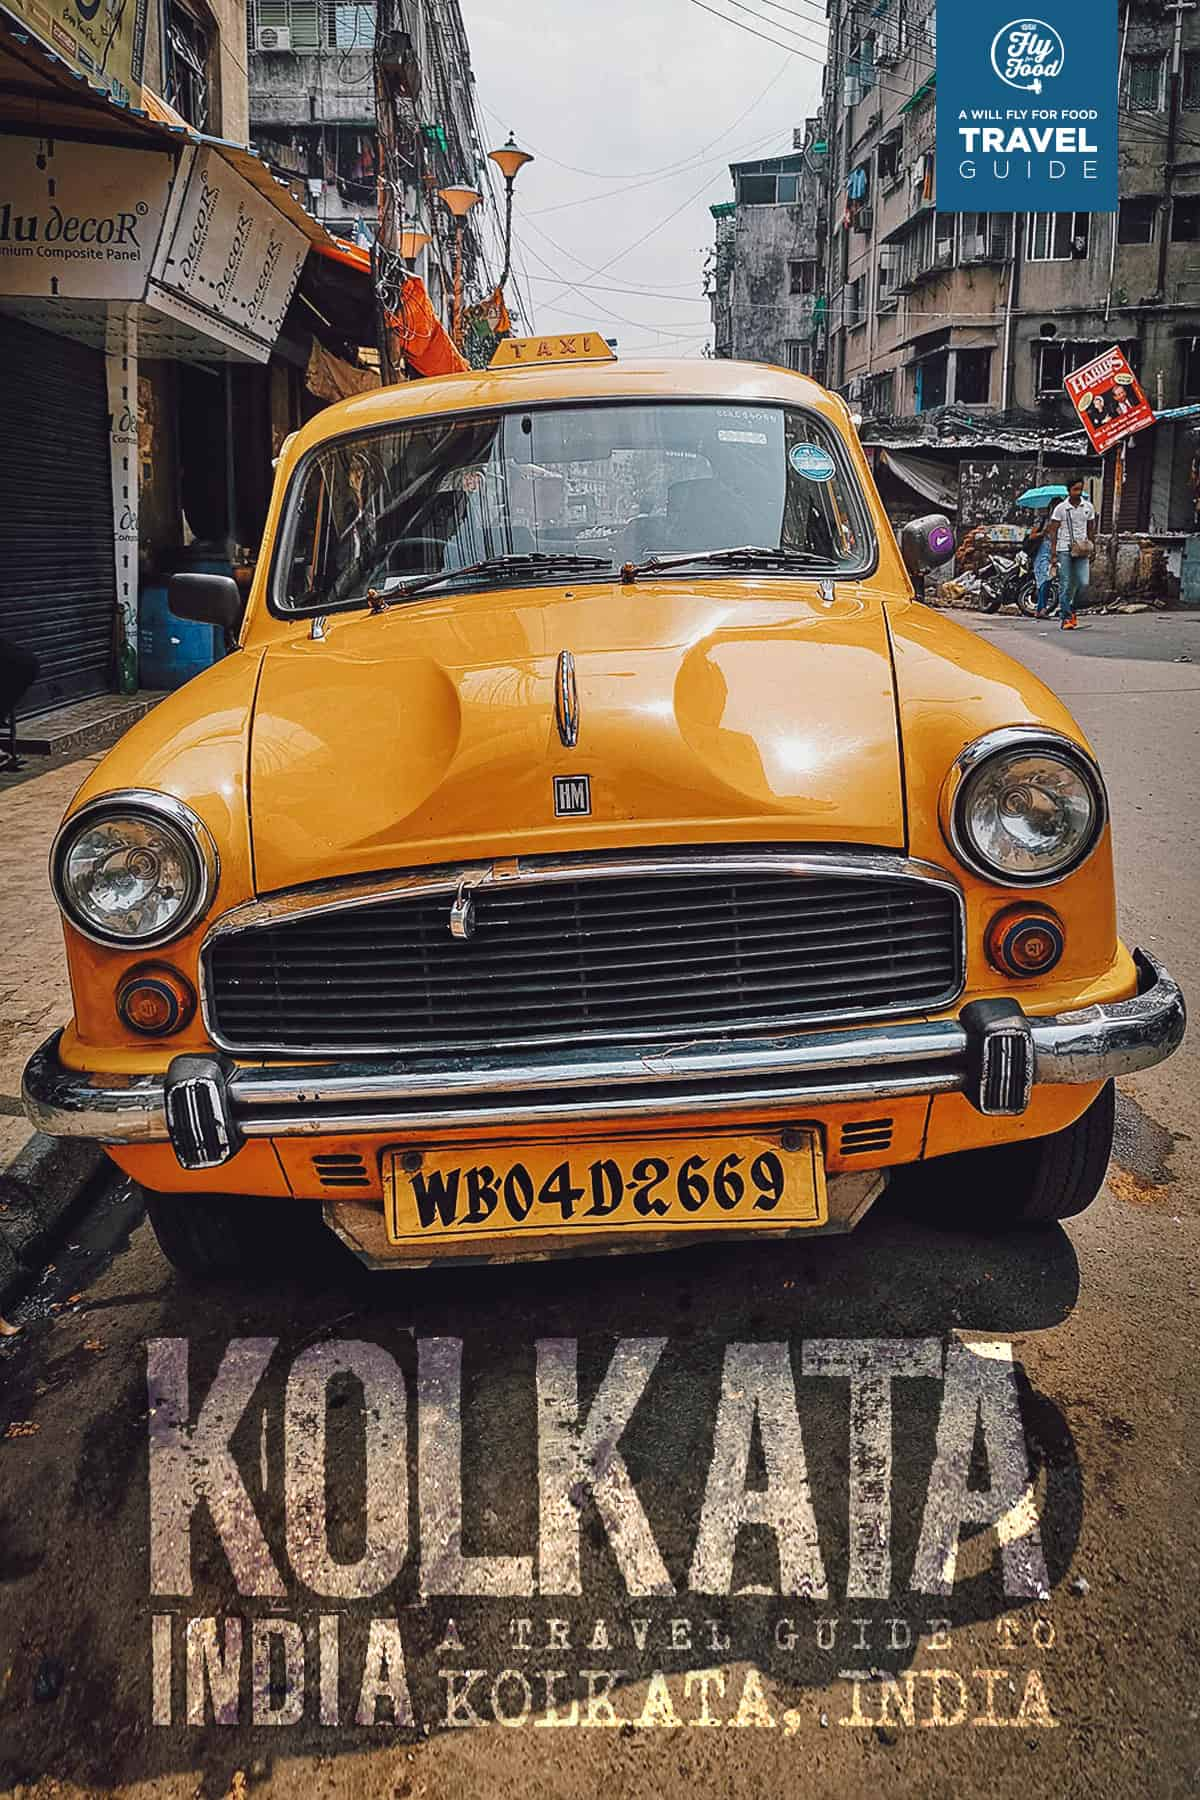 Ambassador taxi in Kolkata, India